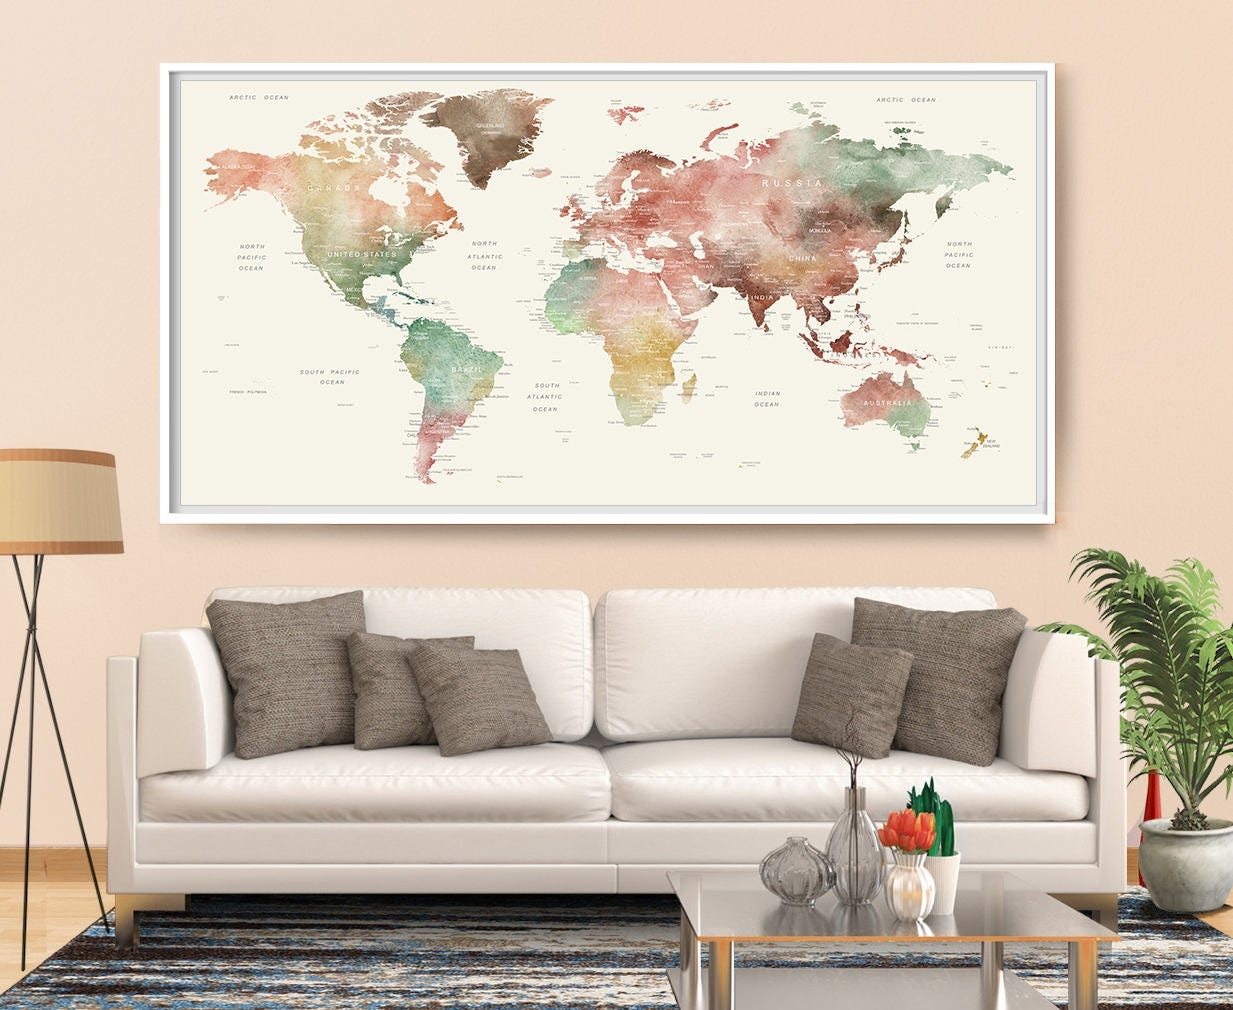 monde carte murale art aquarelle carte monde carte du monde. Black Bedroom Furniture Sets. Home Design Ideas